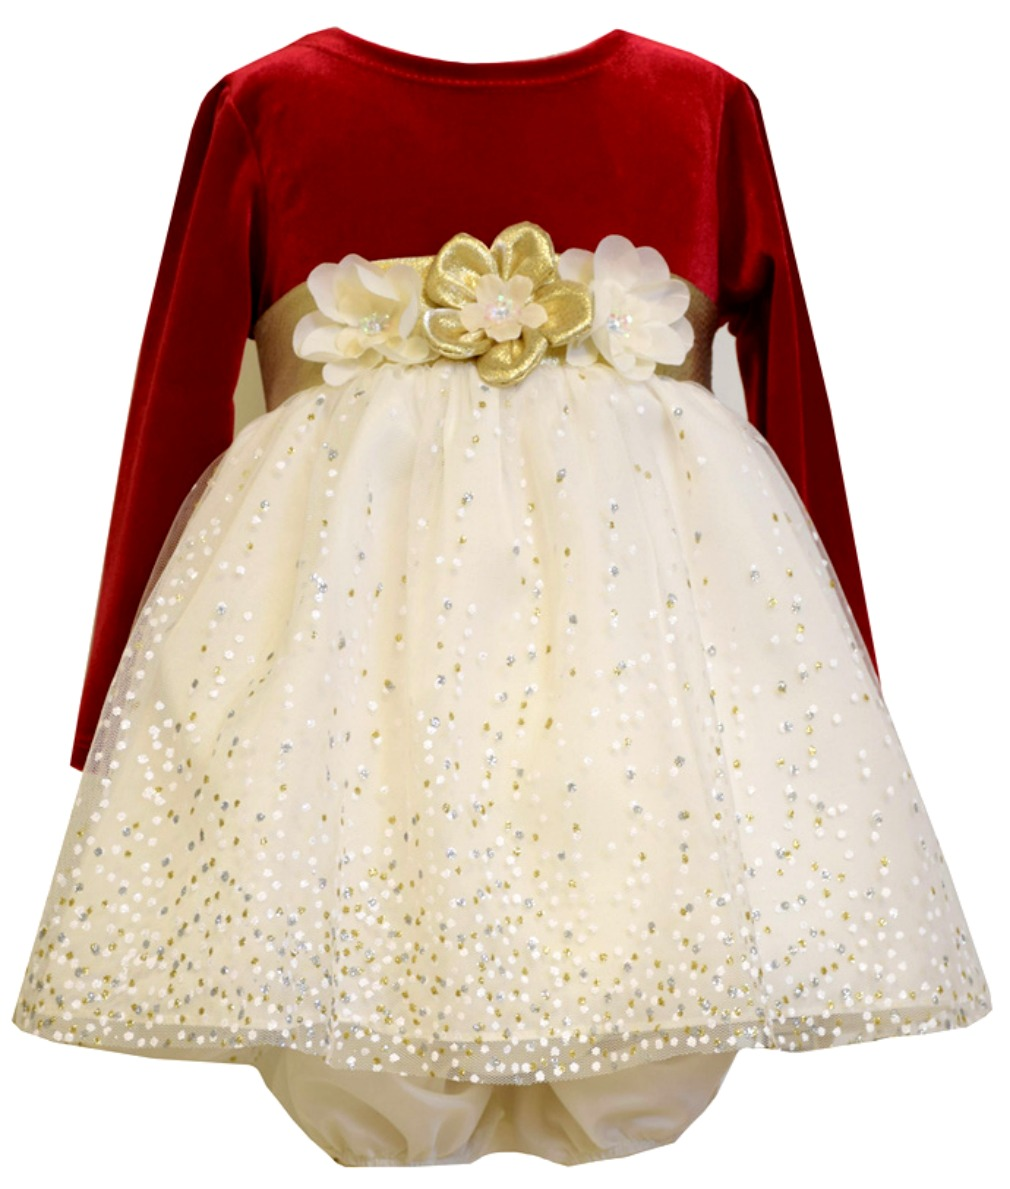 5bb897fcb Bonnie Jean Baby Girls Red Gold Bow Stretch Velvet Party Dress 3-6 months